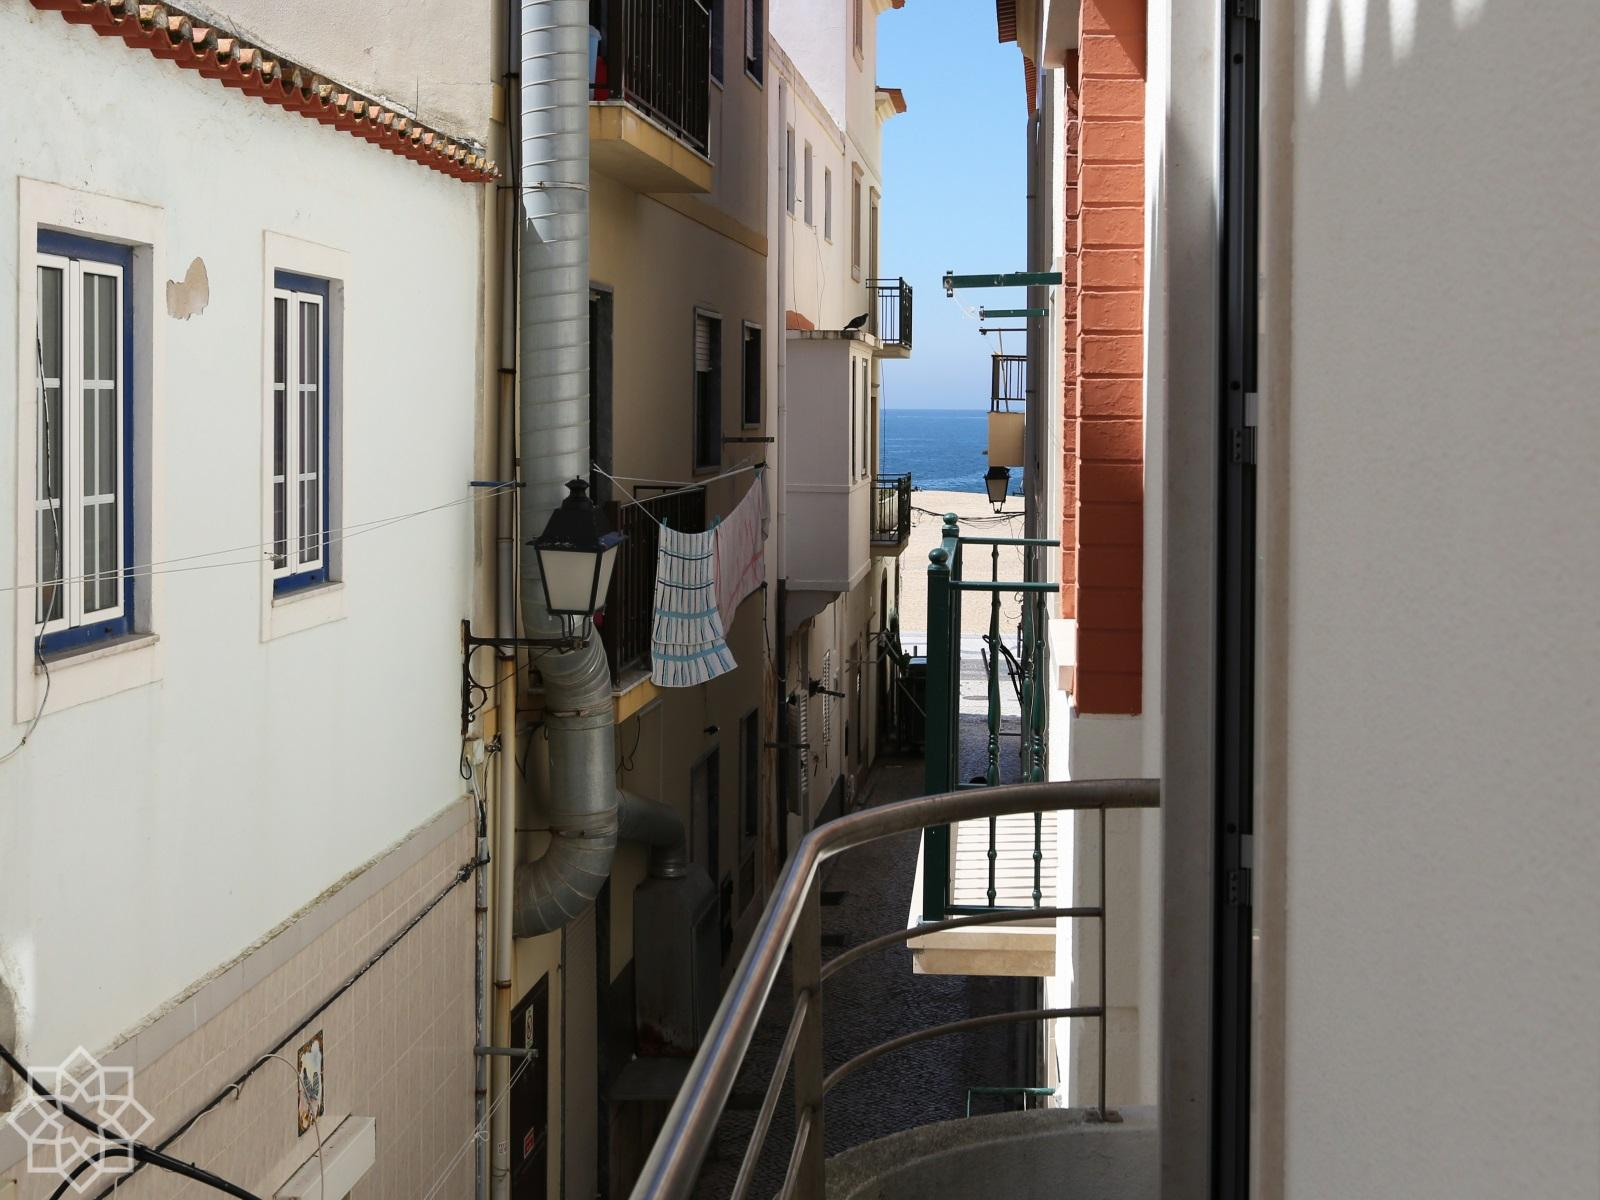 3 bedroom apt 50 m from the beach in Nazaré